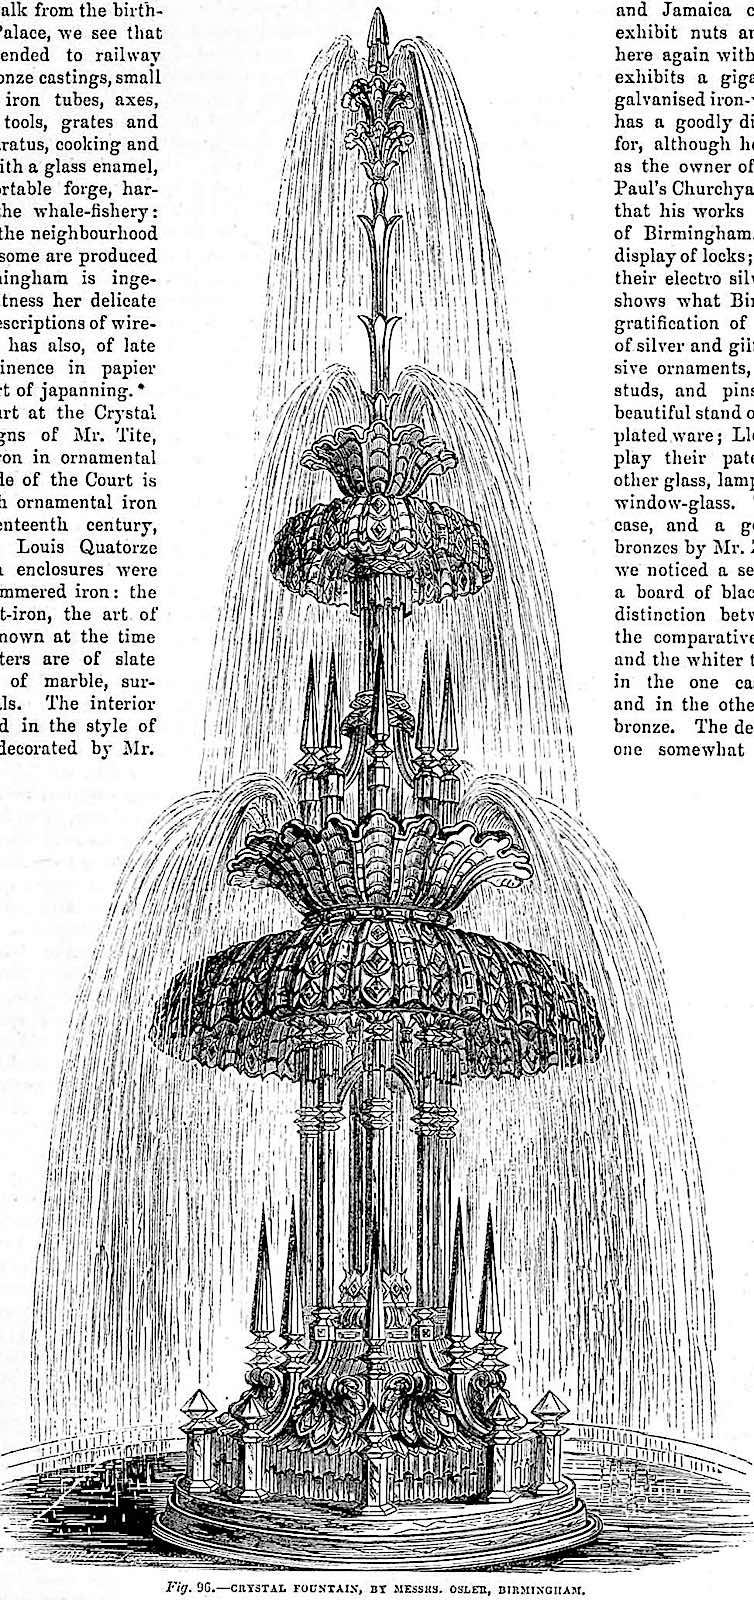 an illustration of a crystal fountain in The Crystal Palace at the 1851 Great Exhibition in London